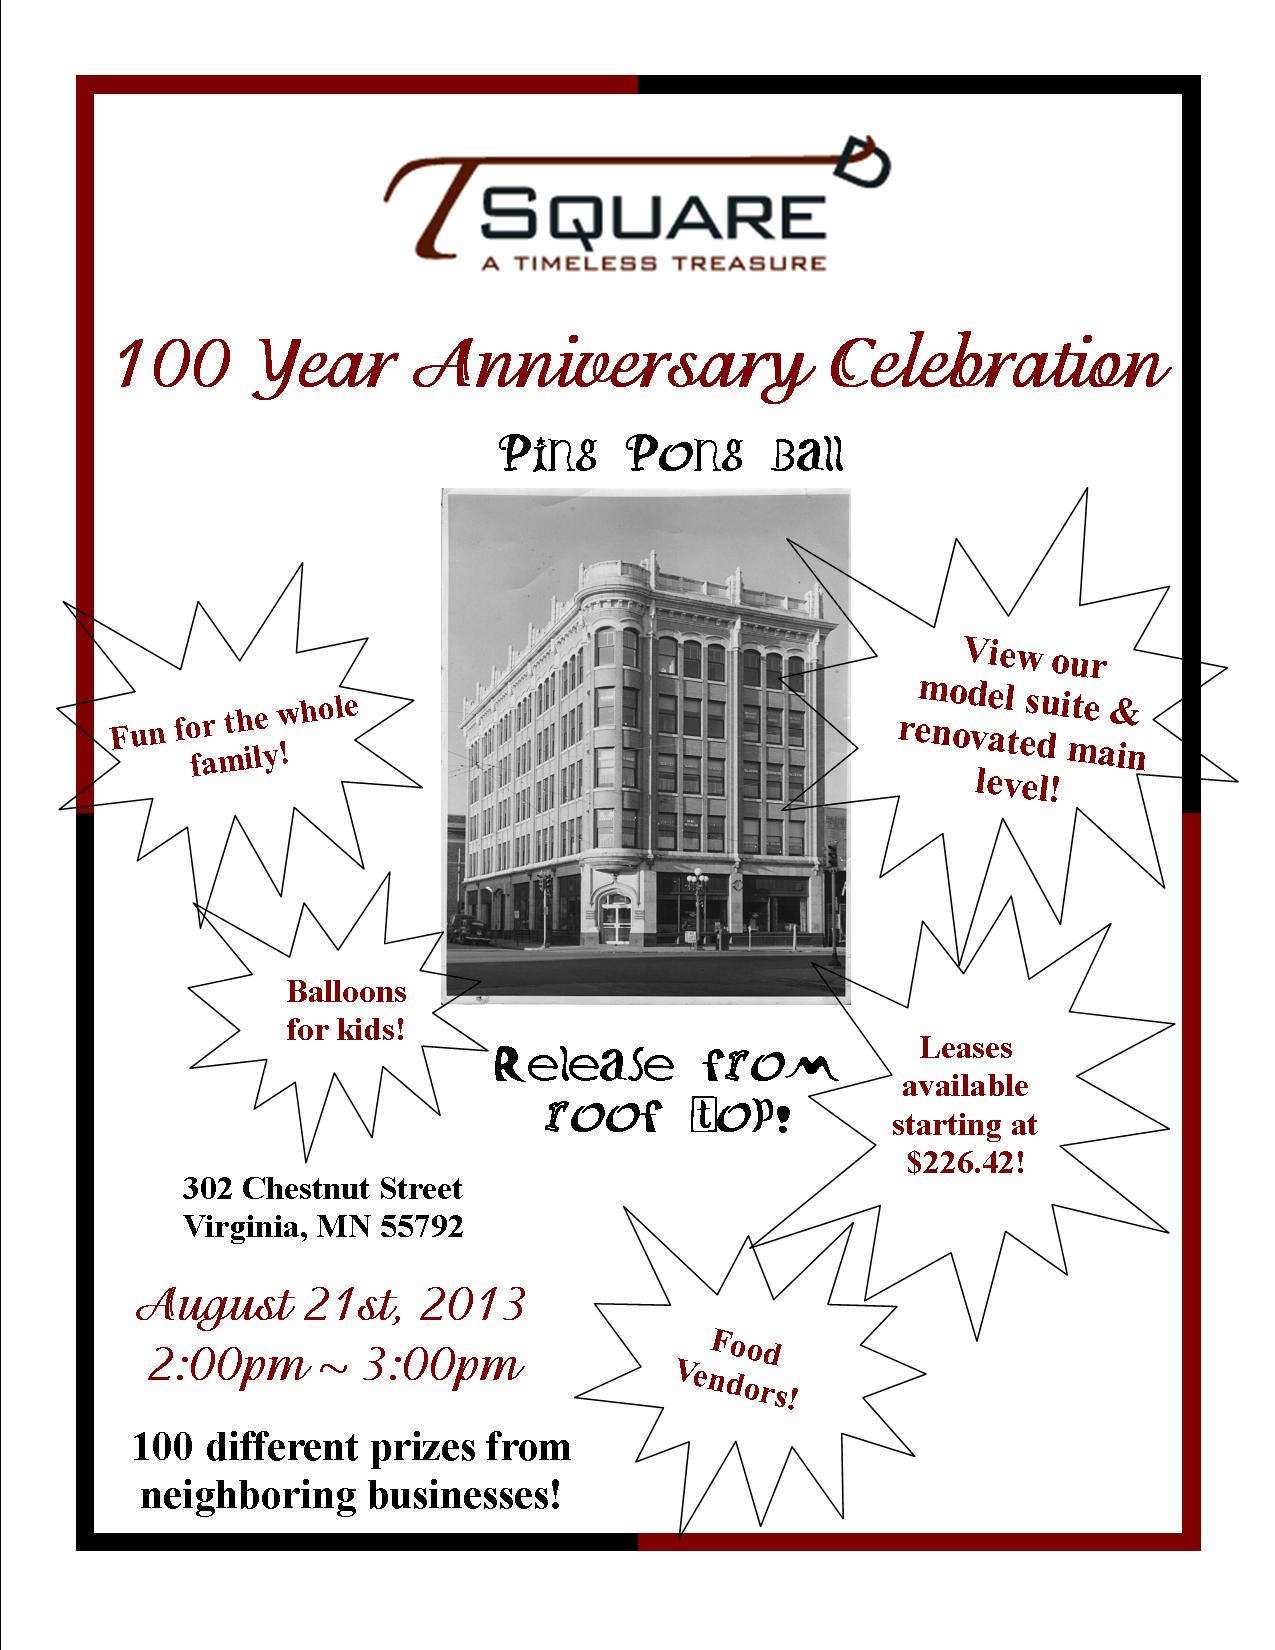 T_Squared_100_Year_Anniversary_Celebration